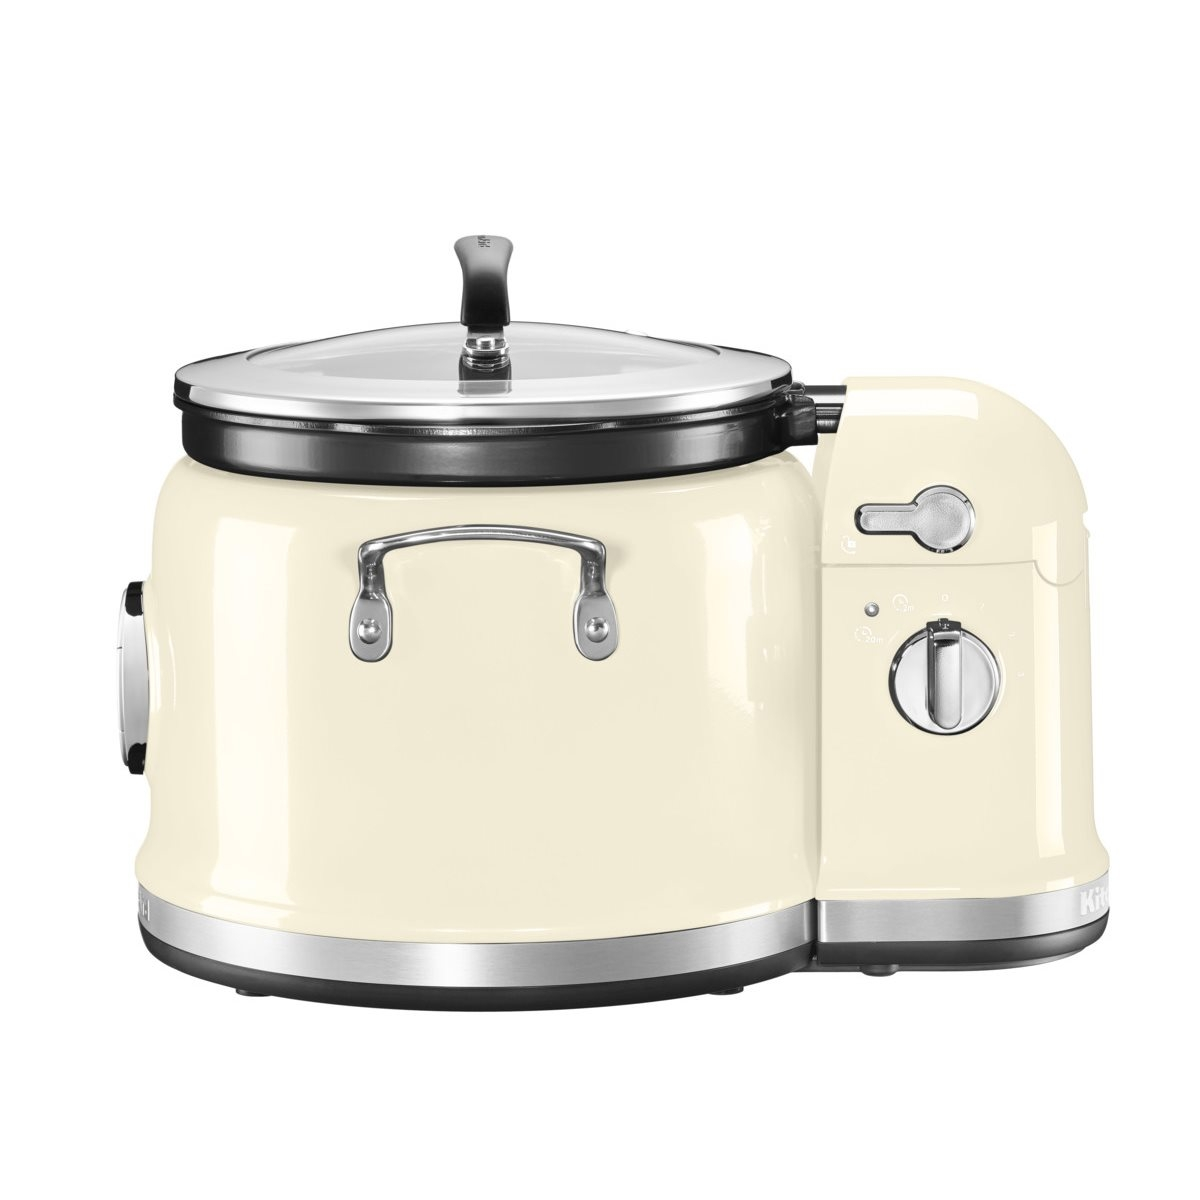 Oala Multicooker Stir Tower Kmc Kitchenaid